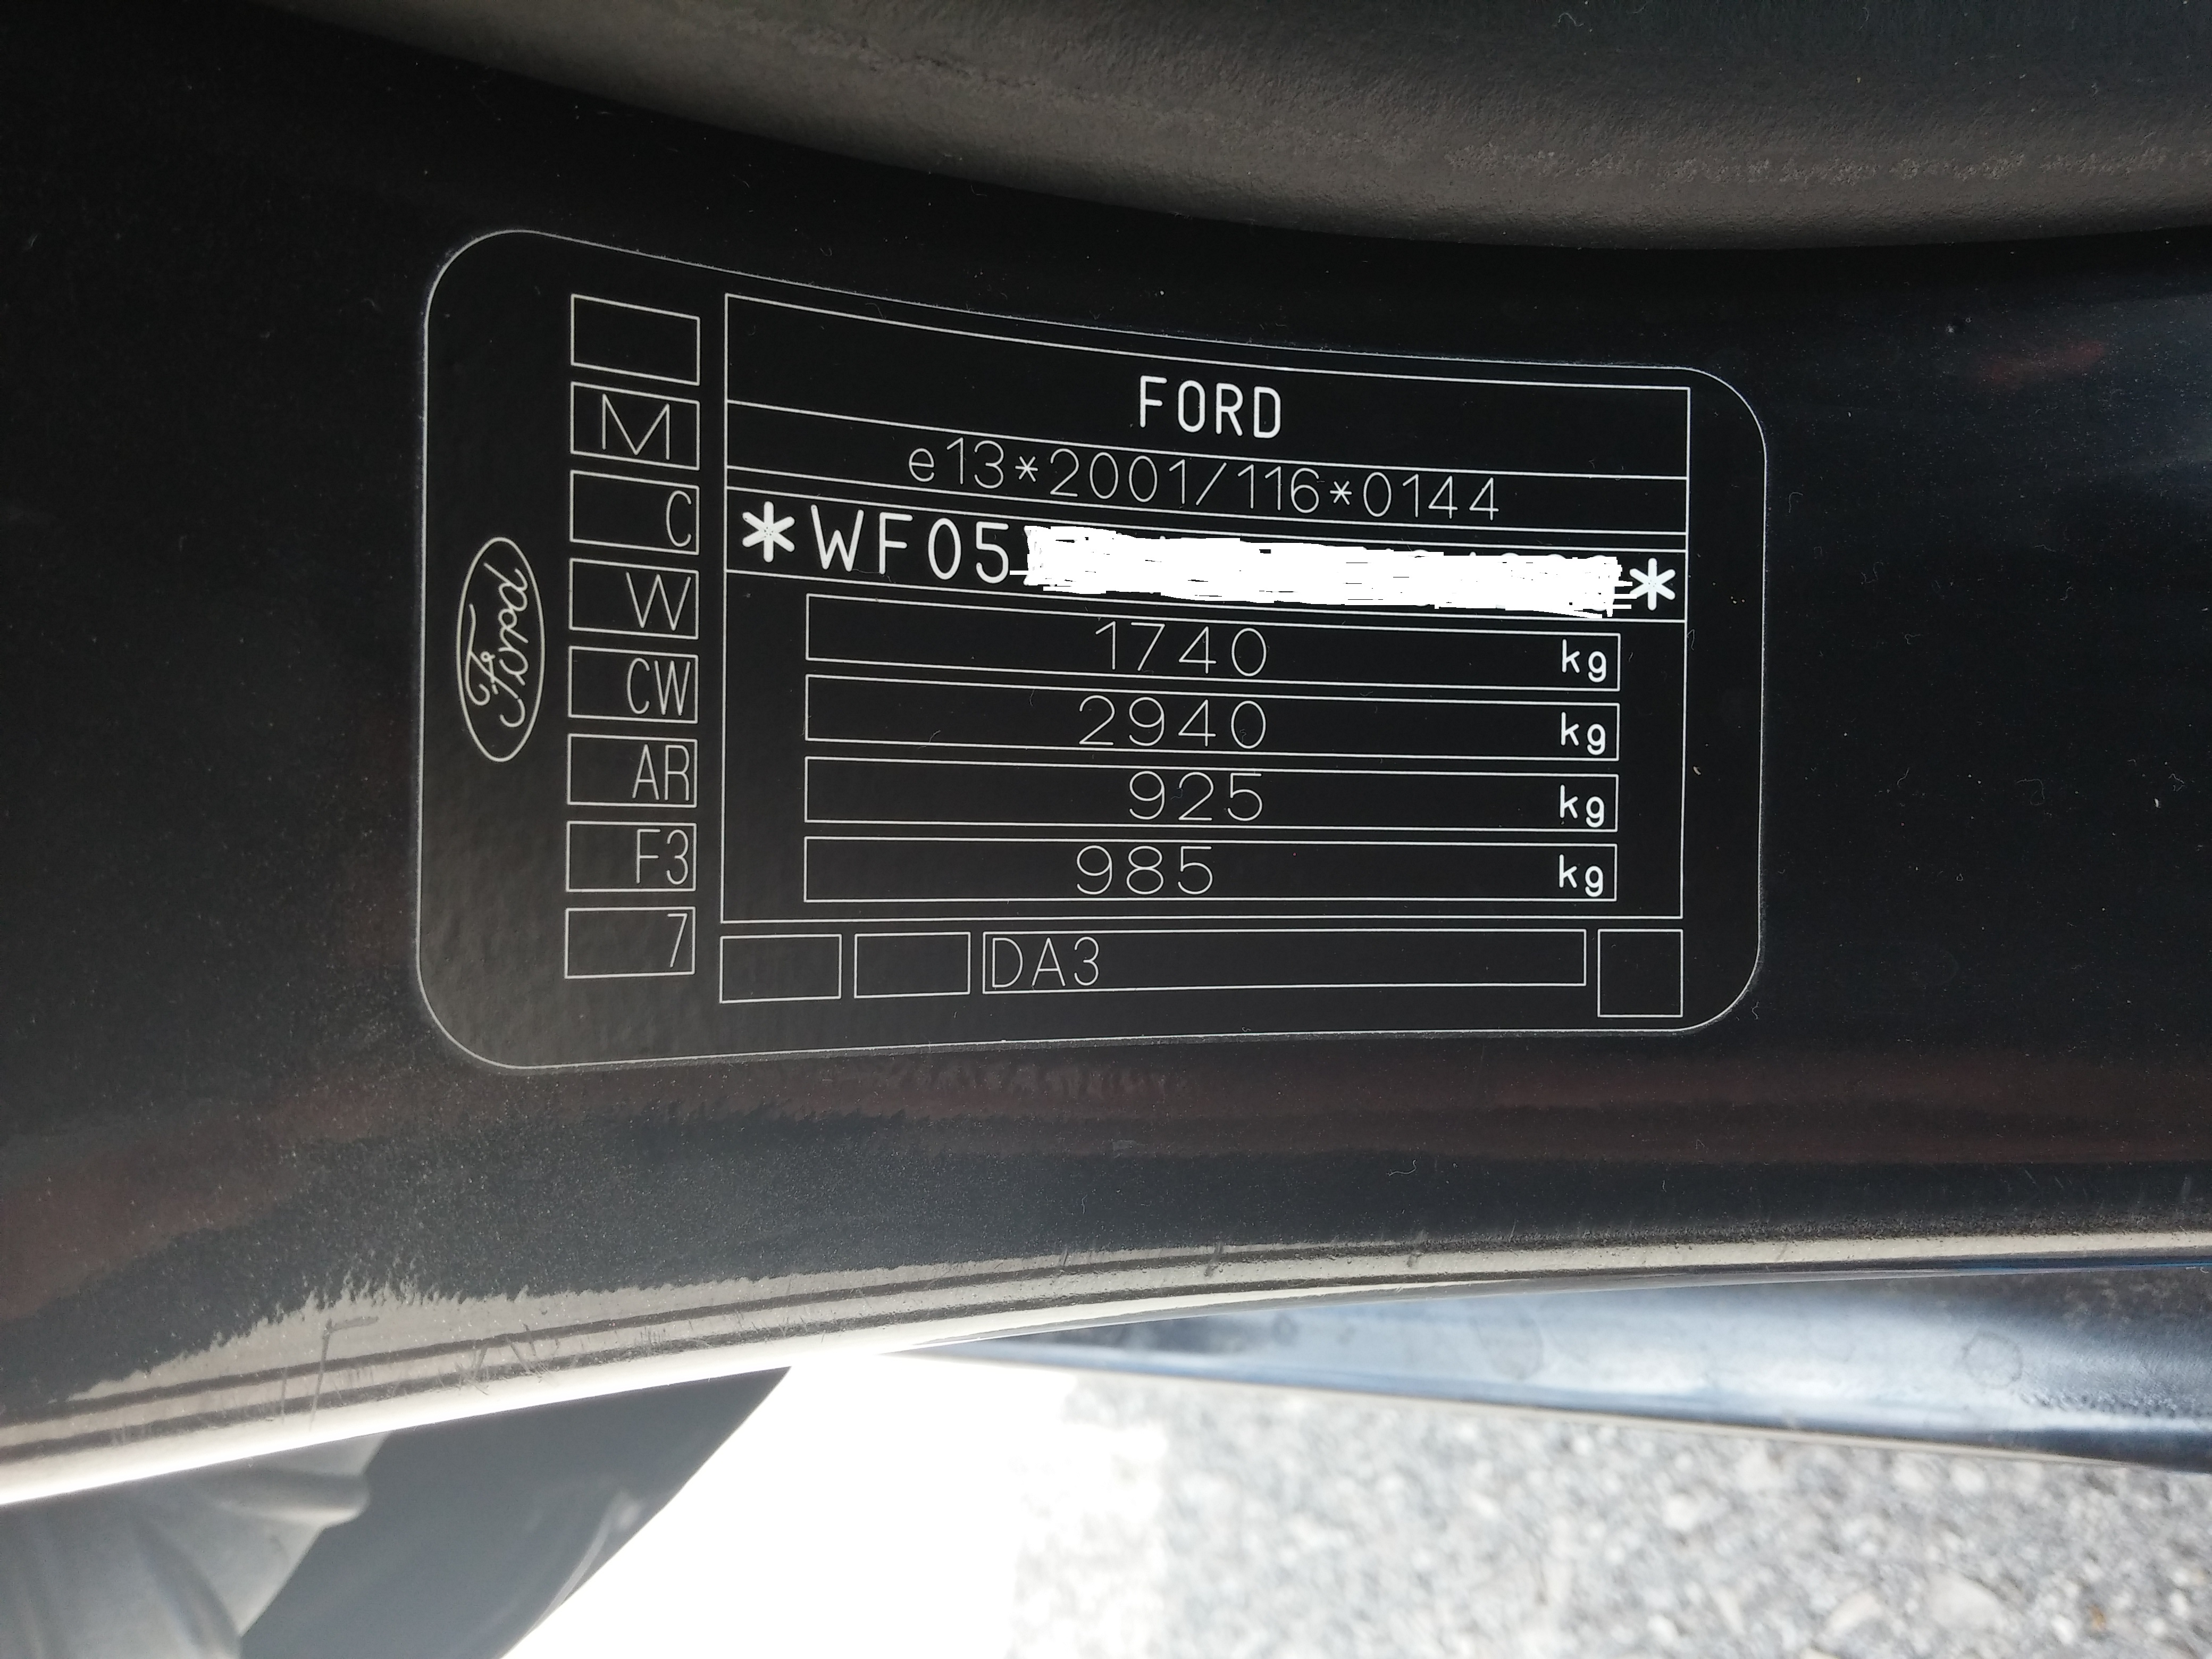 Paint Code Issues Ford Fiesta Club Ford Owners Club Ford Forums